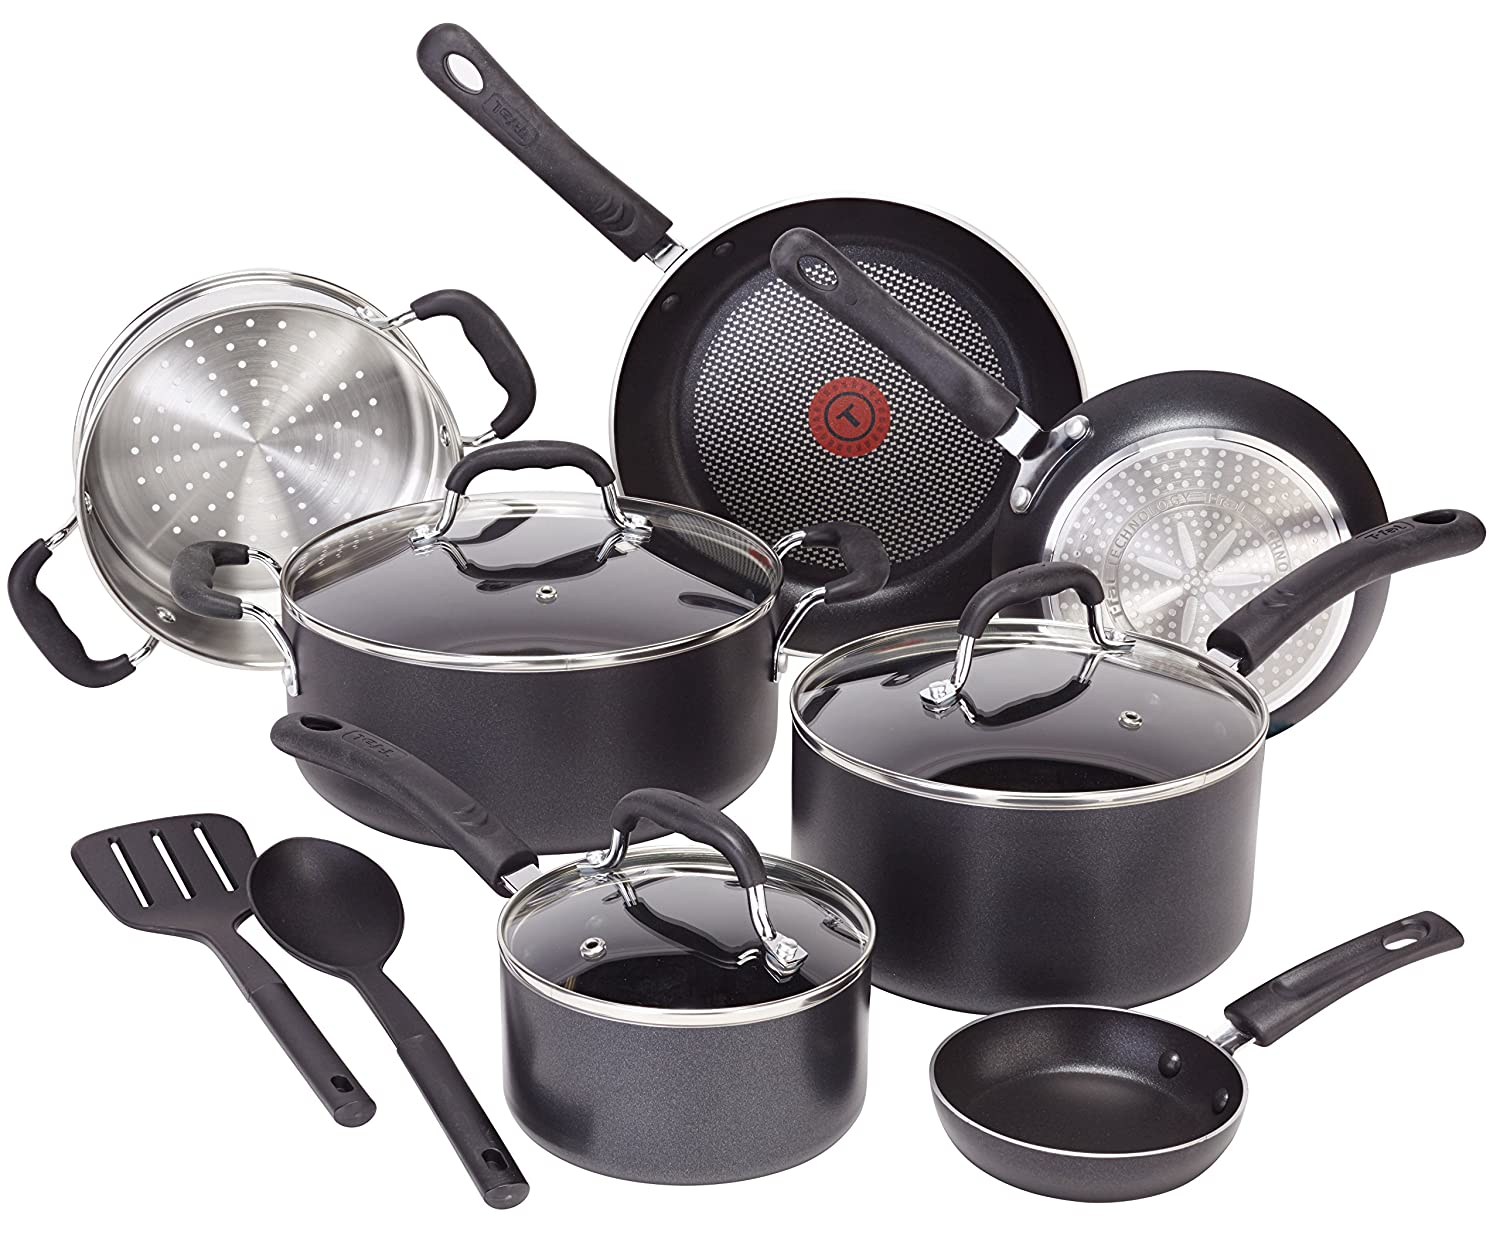 T-fal C515SC Professional Total Nonstick Thermo-Spot Heat Indicator Induction Base Cookware Set, 12-Piece, Black 2100093595